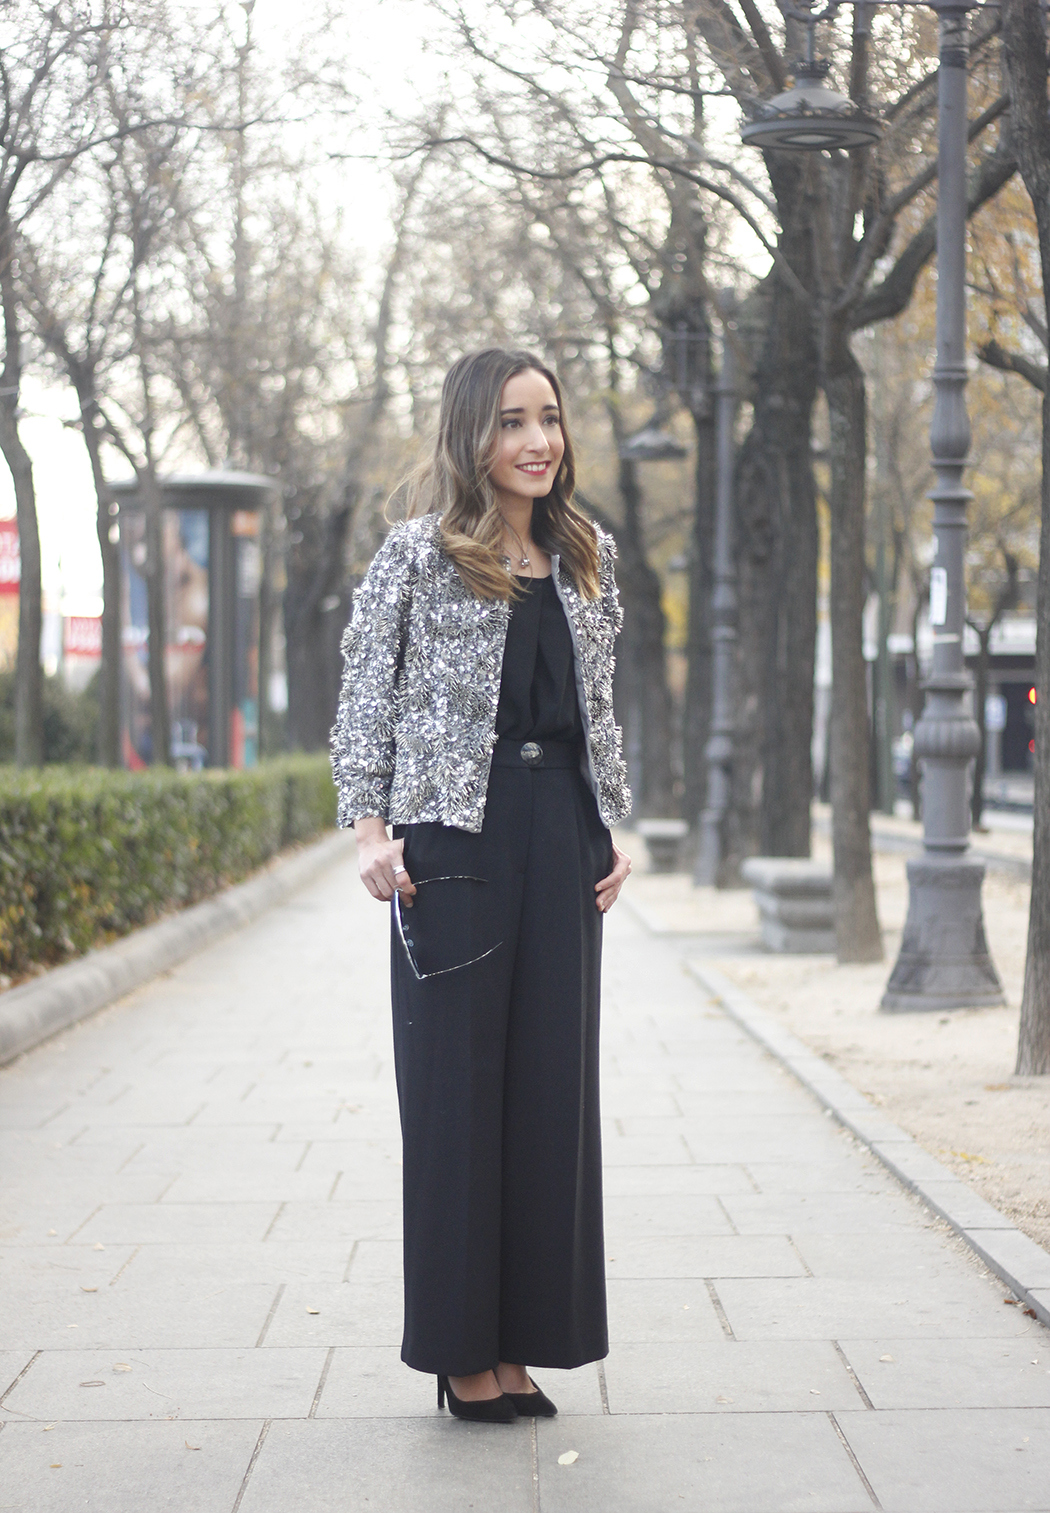 sequined jacket cropped trousers winter outfit black heels accessories streetstyle09